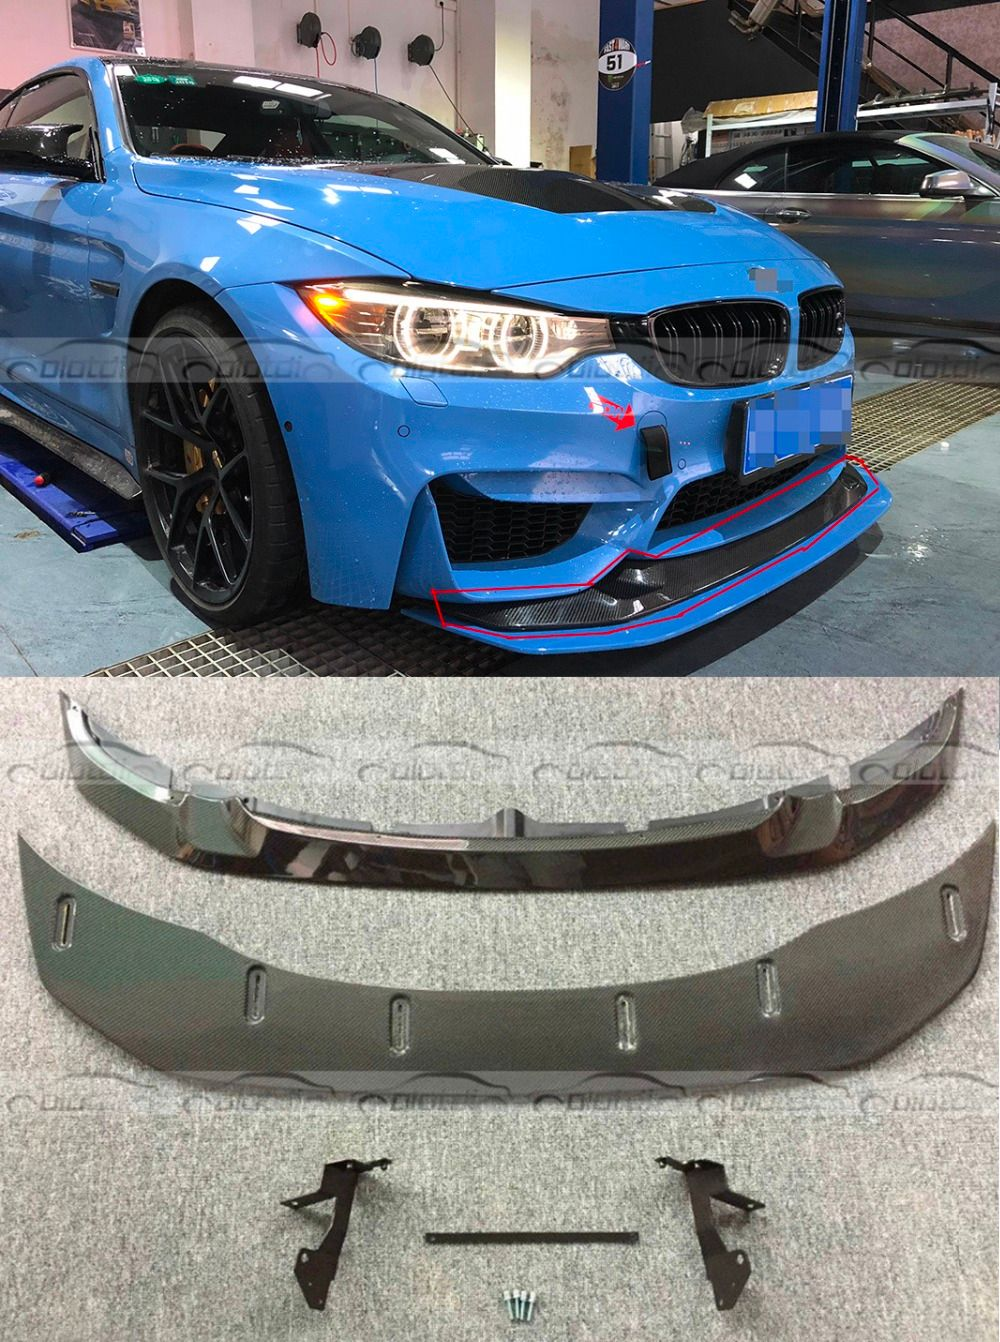 F80 F82 GTS Style Car Styling Real Carbon Fiber Front Lip & Spoiler Bumper Fit For BMW F80 M3 F82 M4 2013+ 2PCS